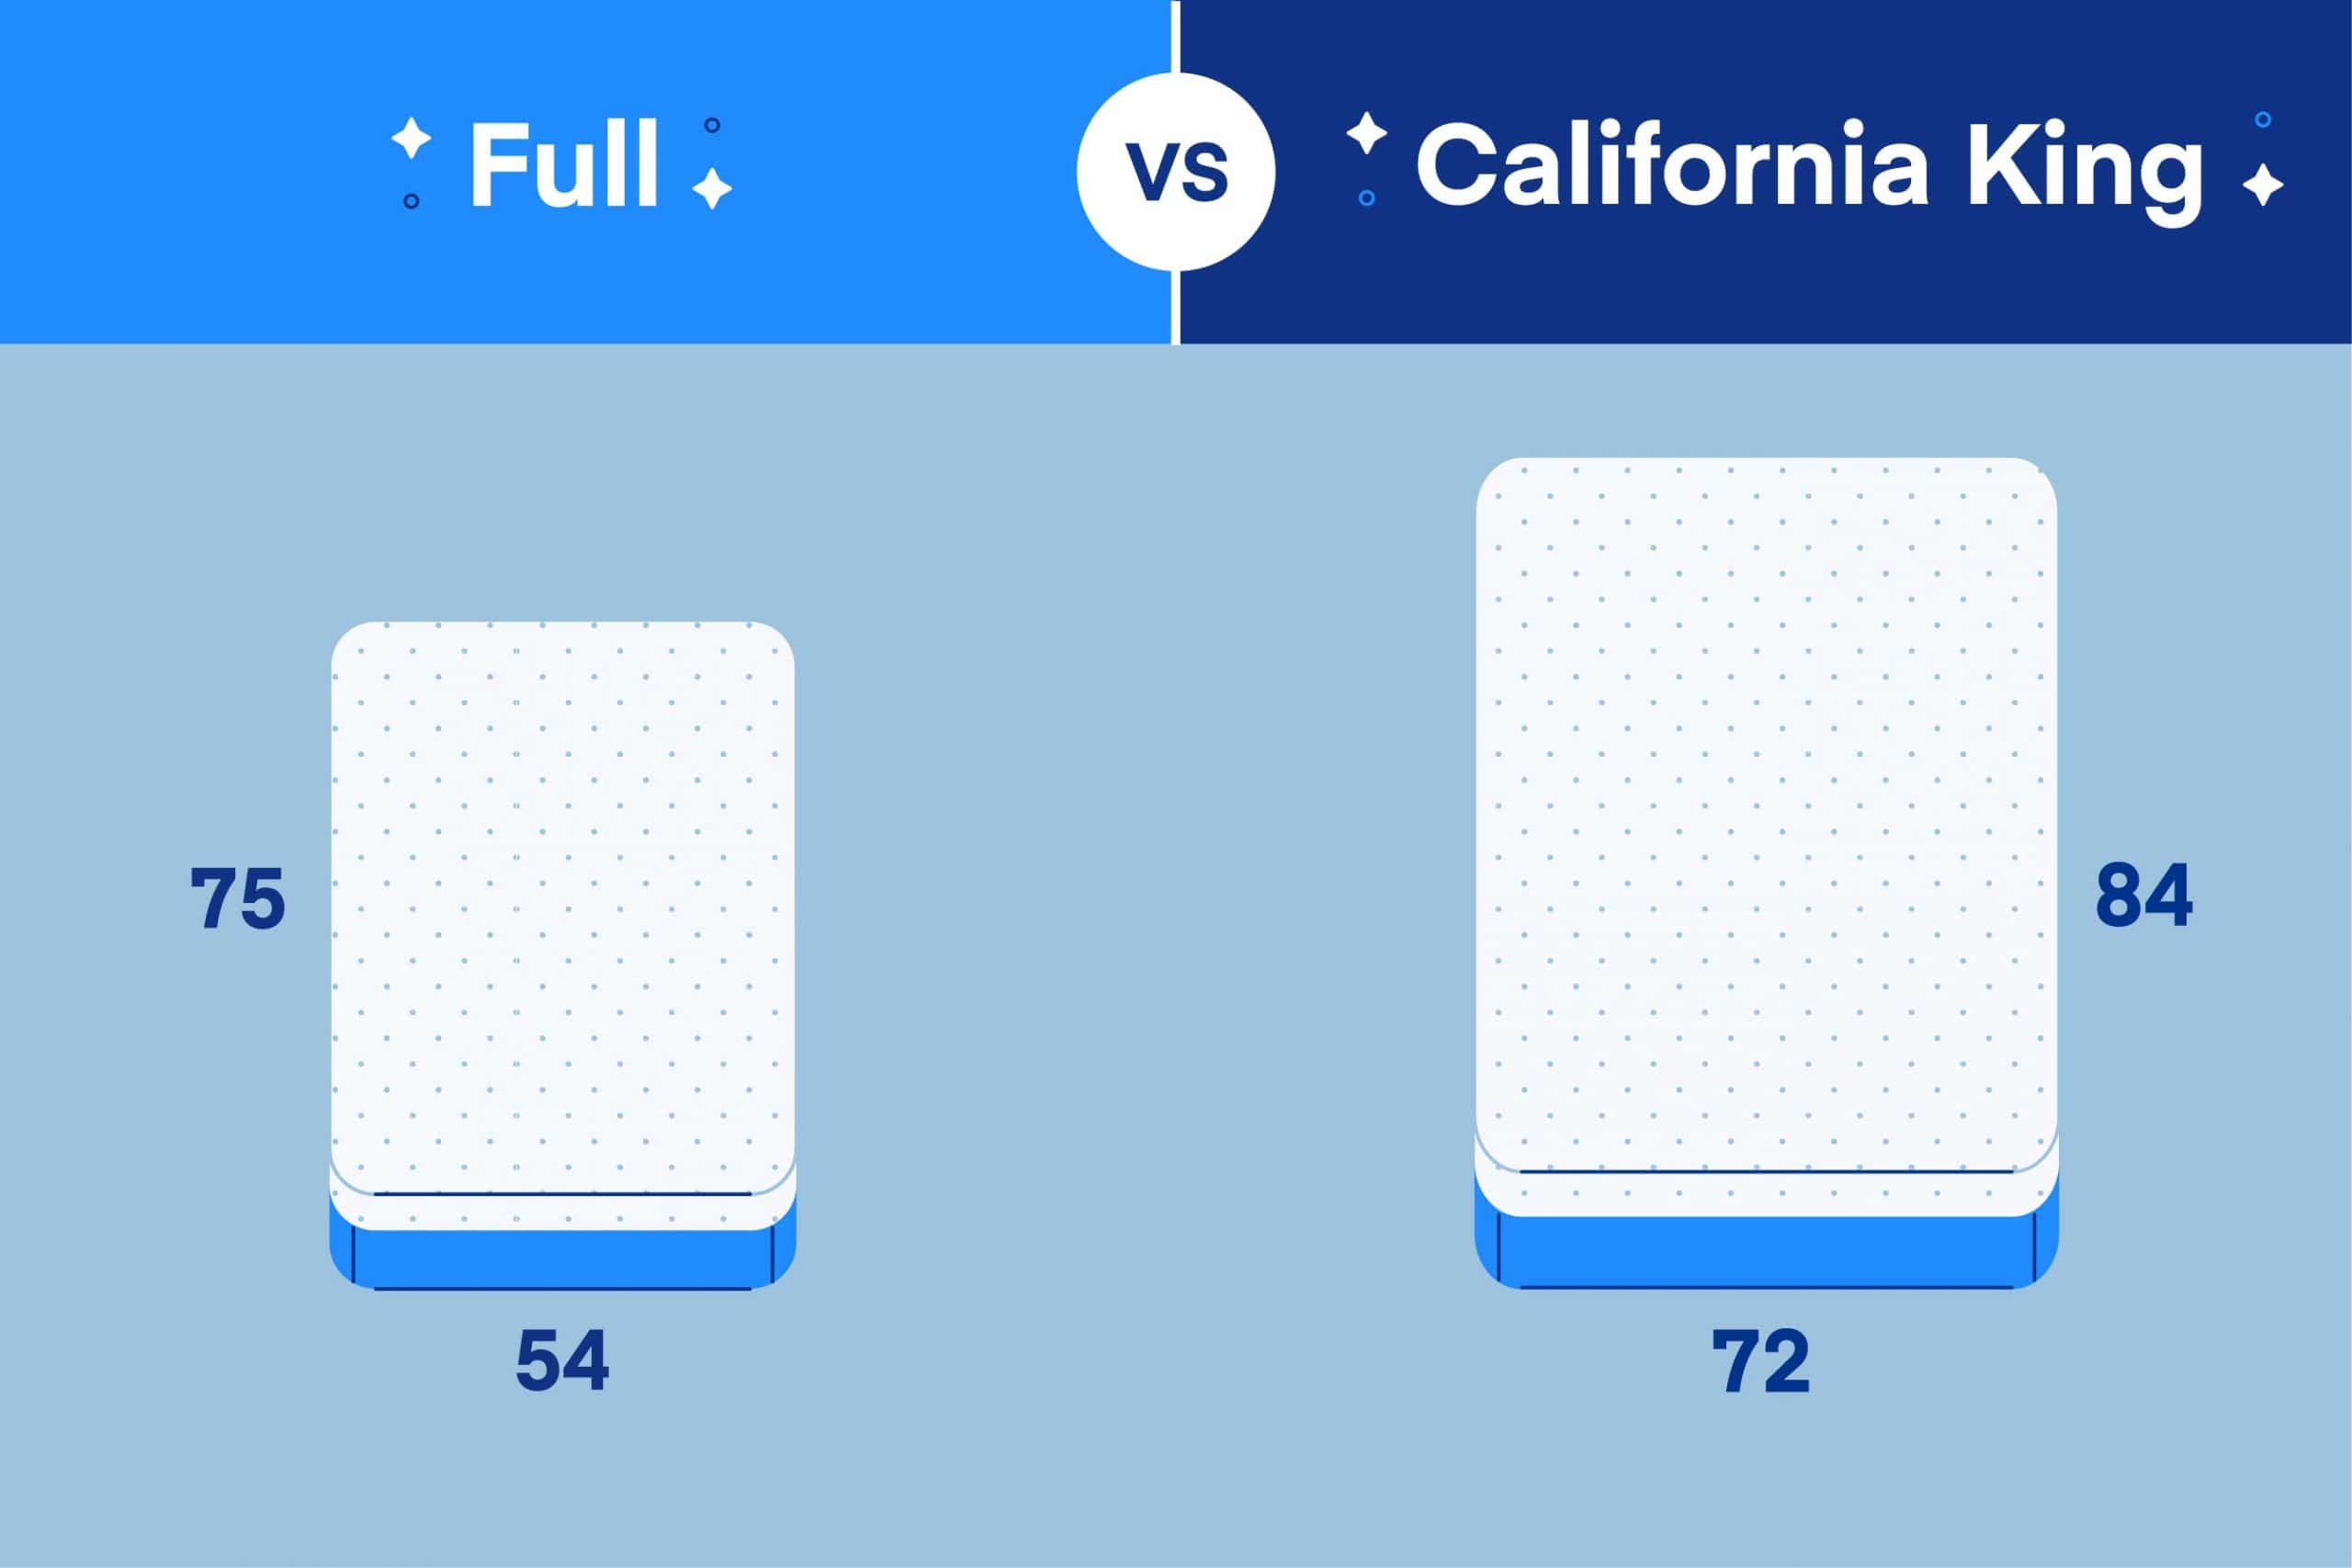 California King vs. Full: What's the Difference?